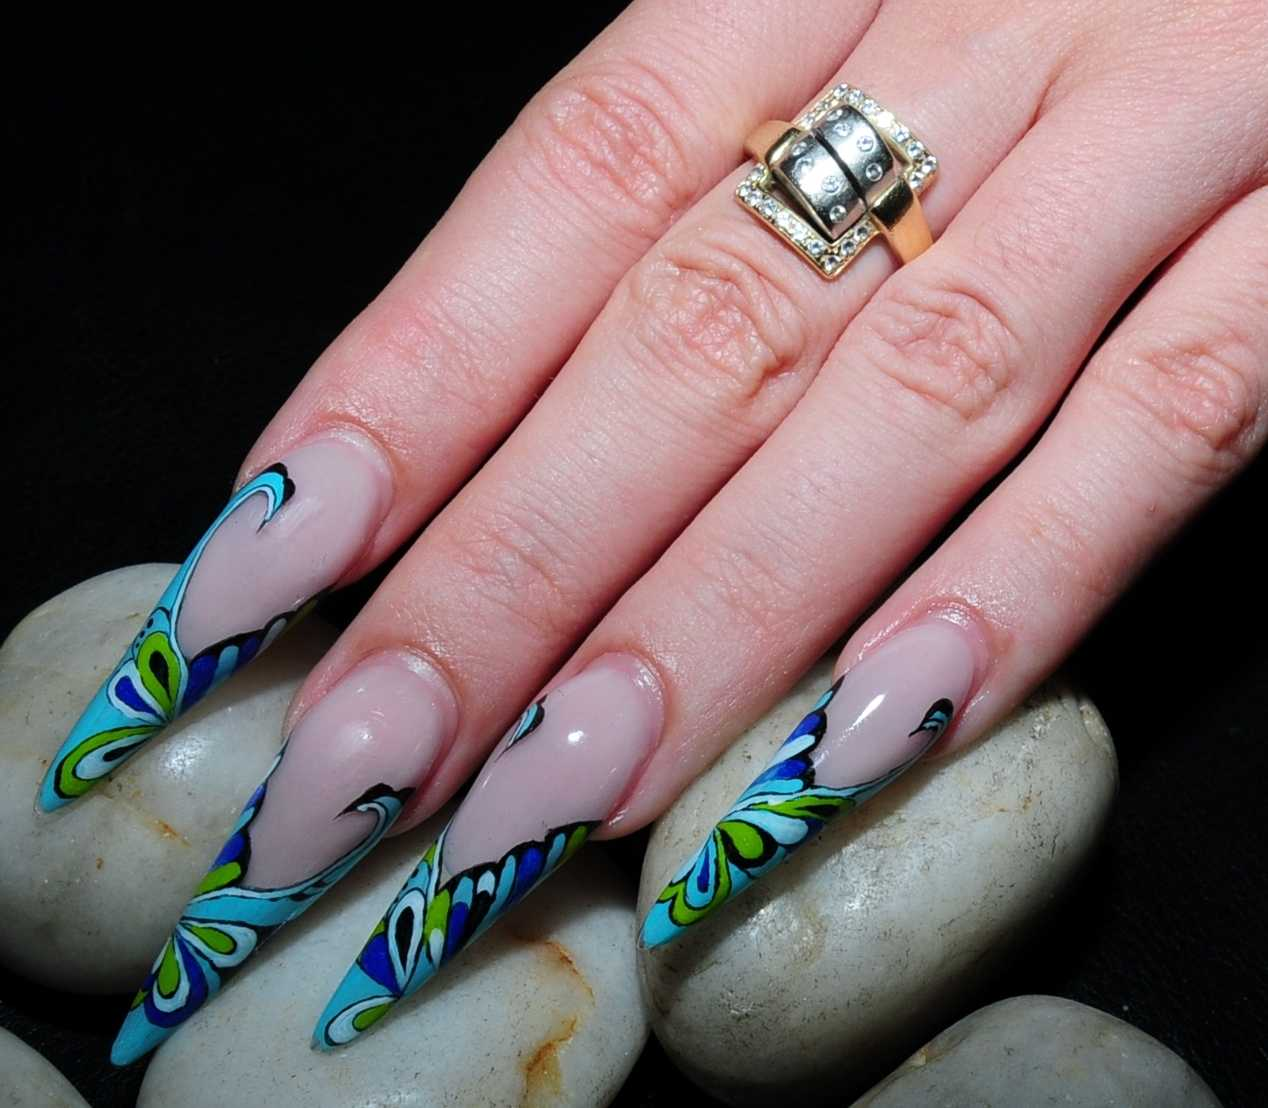 61 Latest Stiletto Nail Art Design Ideas For Teen Girls